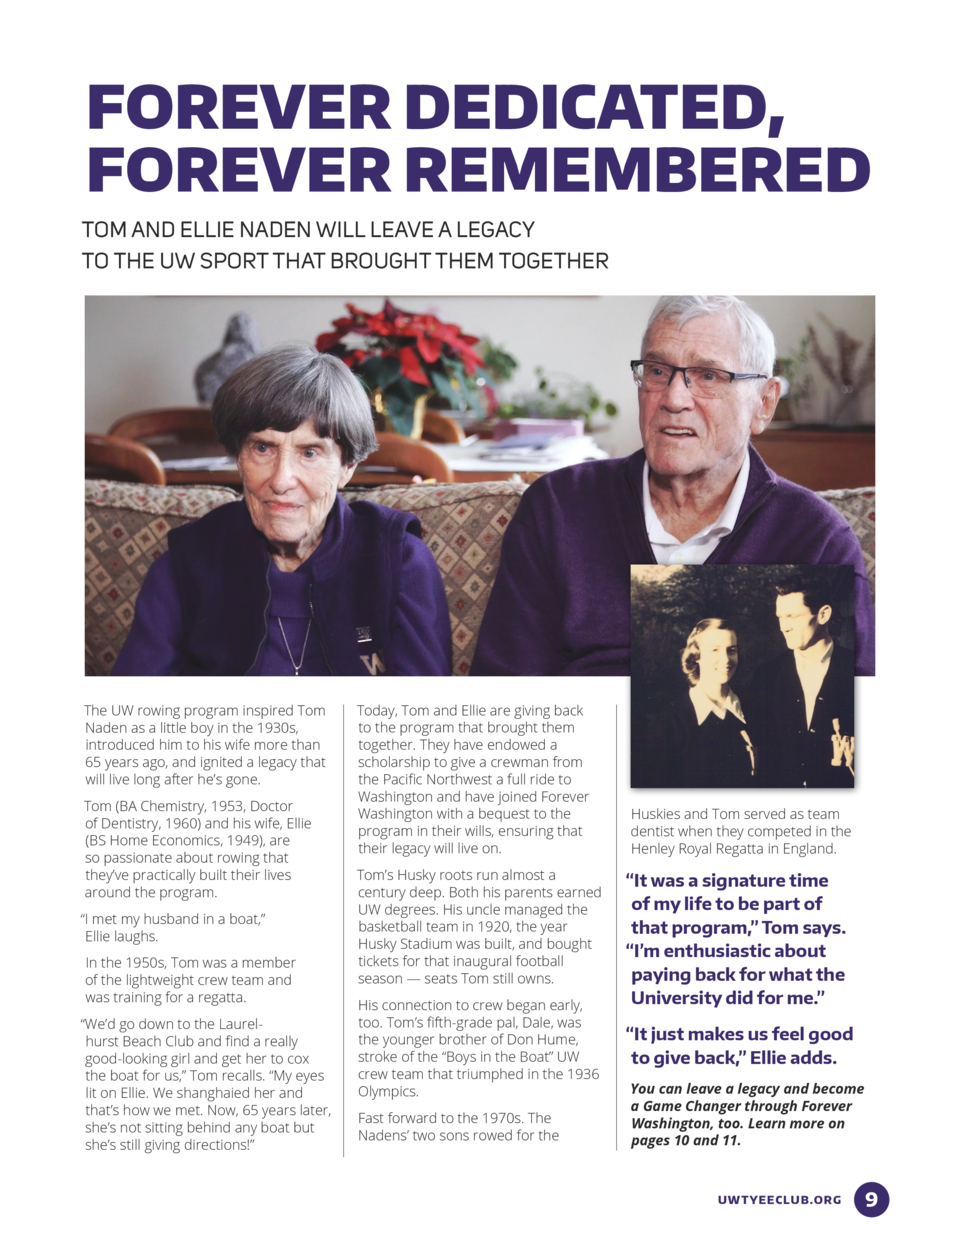 FOREVER DEDICATED, FOREVER REMEMBERED TOM AND ELLIE NADEN WILL LEAVE A LEGACY TO THE UW SPORT THAT BROUGHT THEM TOGETHER  ...